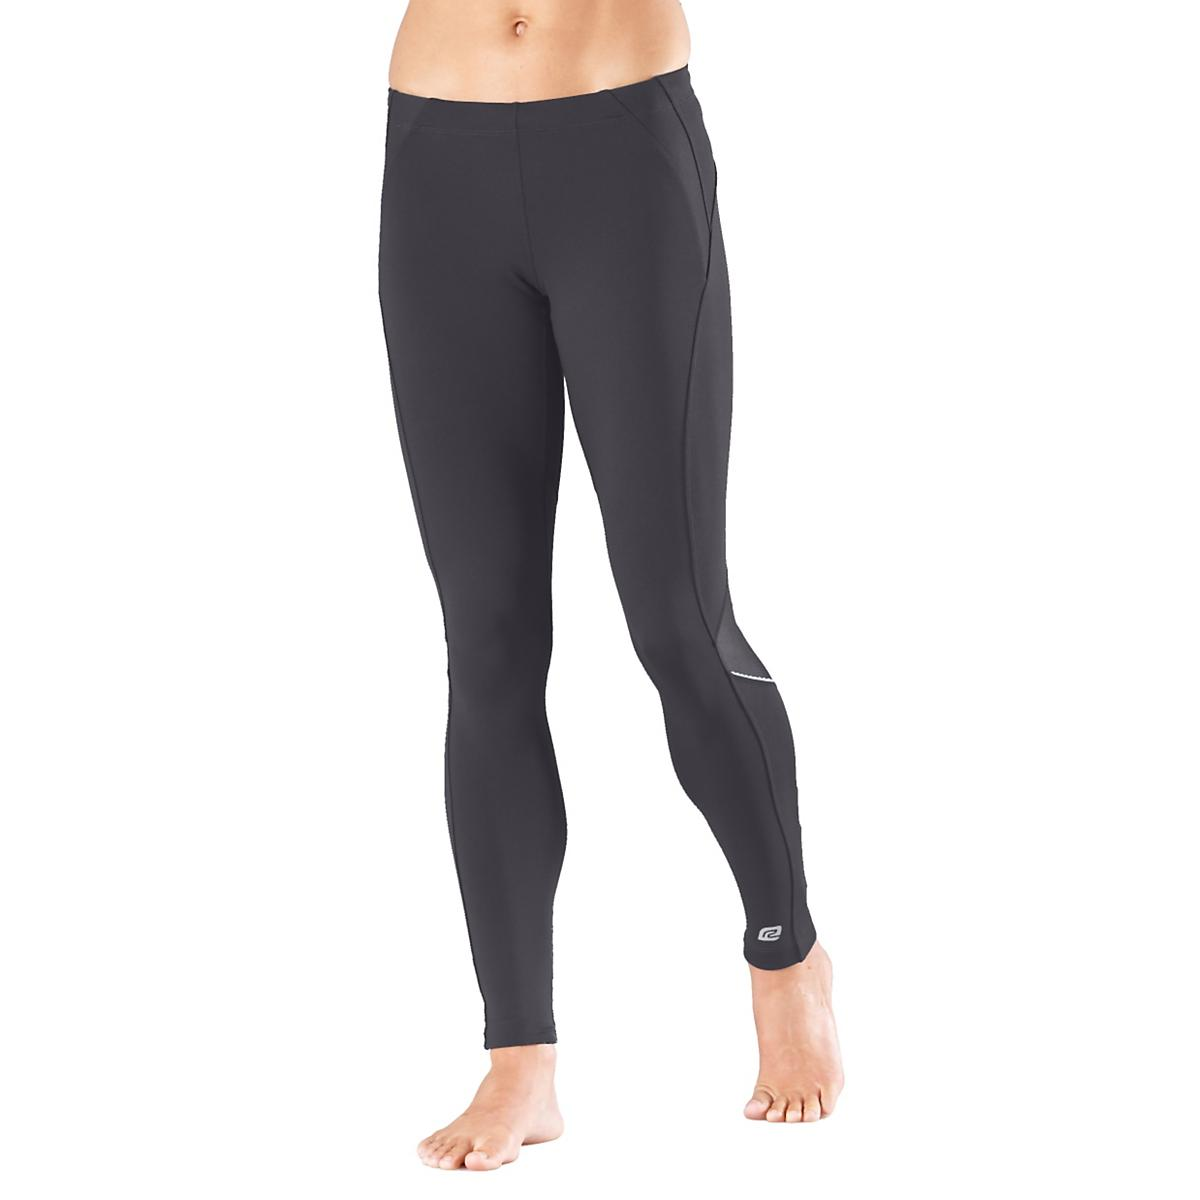 ced68feab973d Womens R-Gear High-Speed Compression Fitted Tights at Road Runner Sports